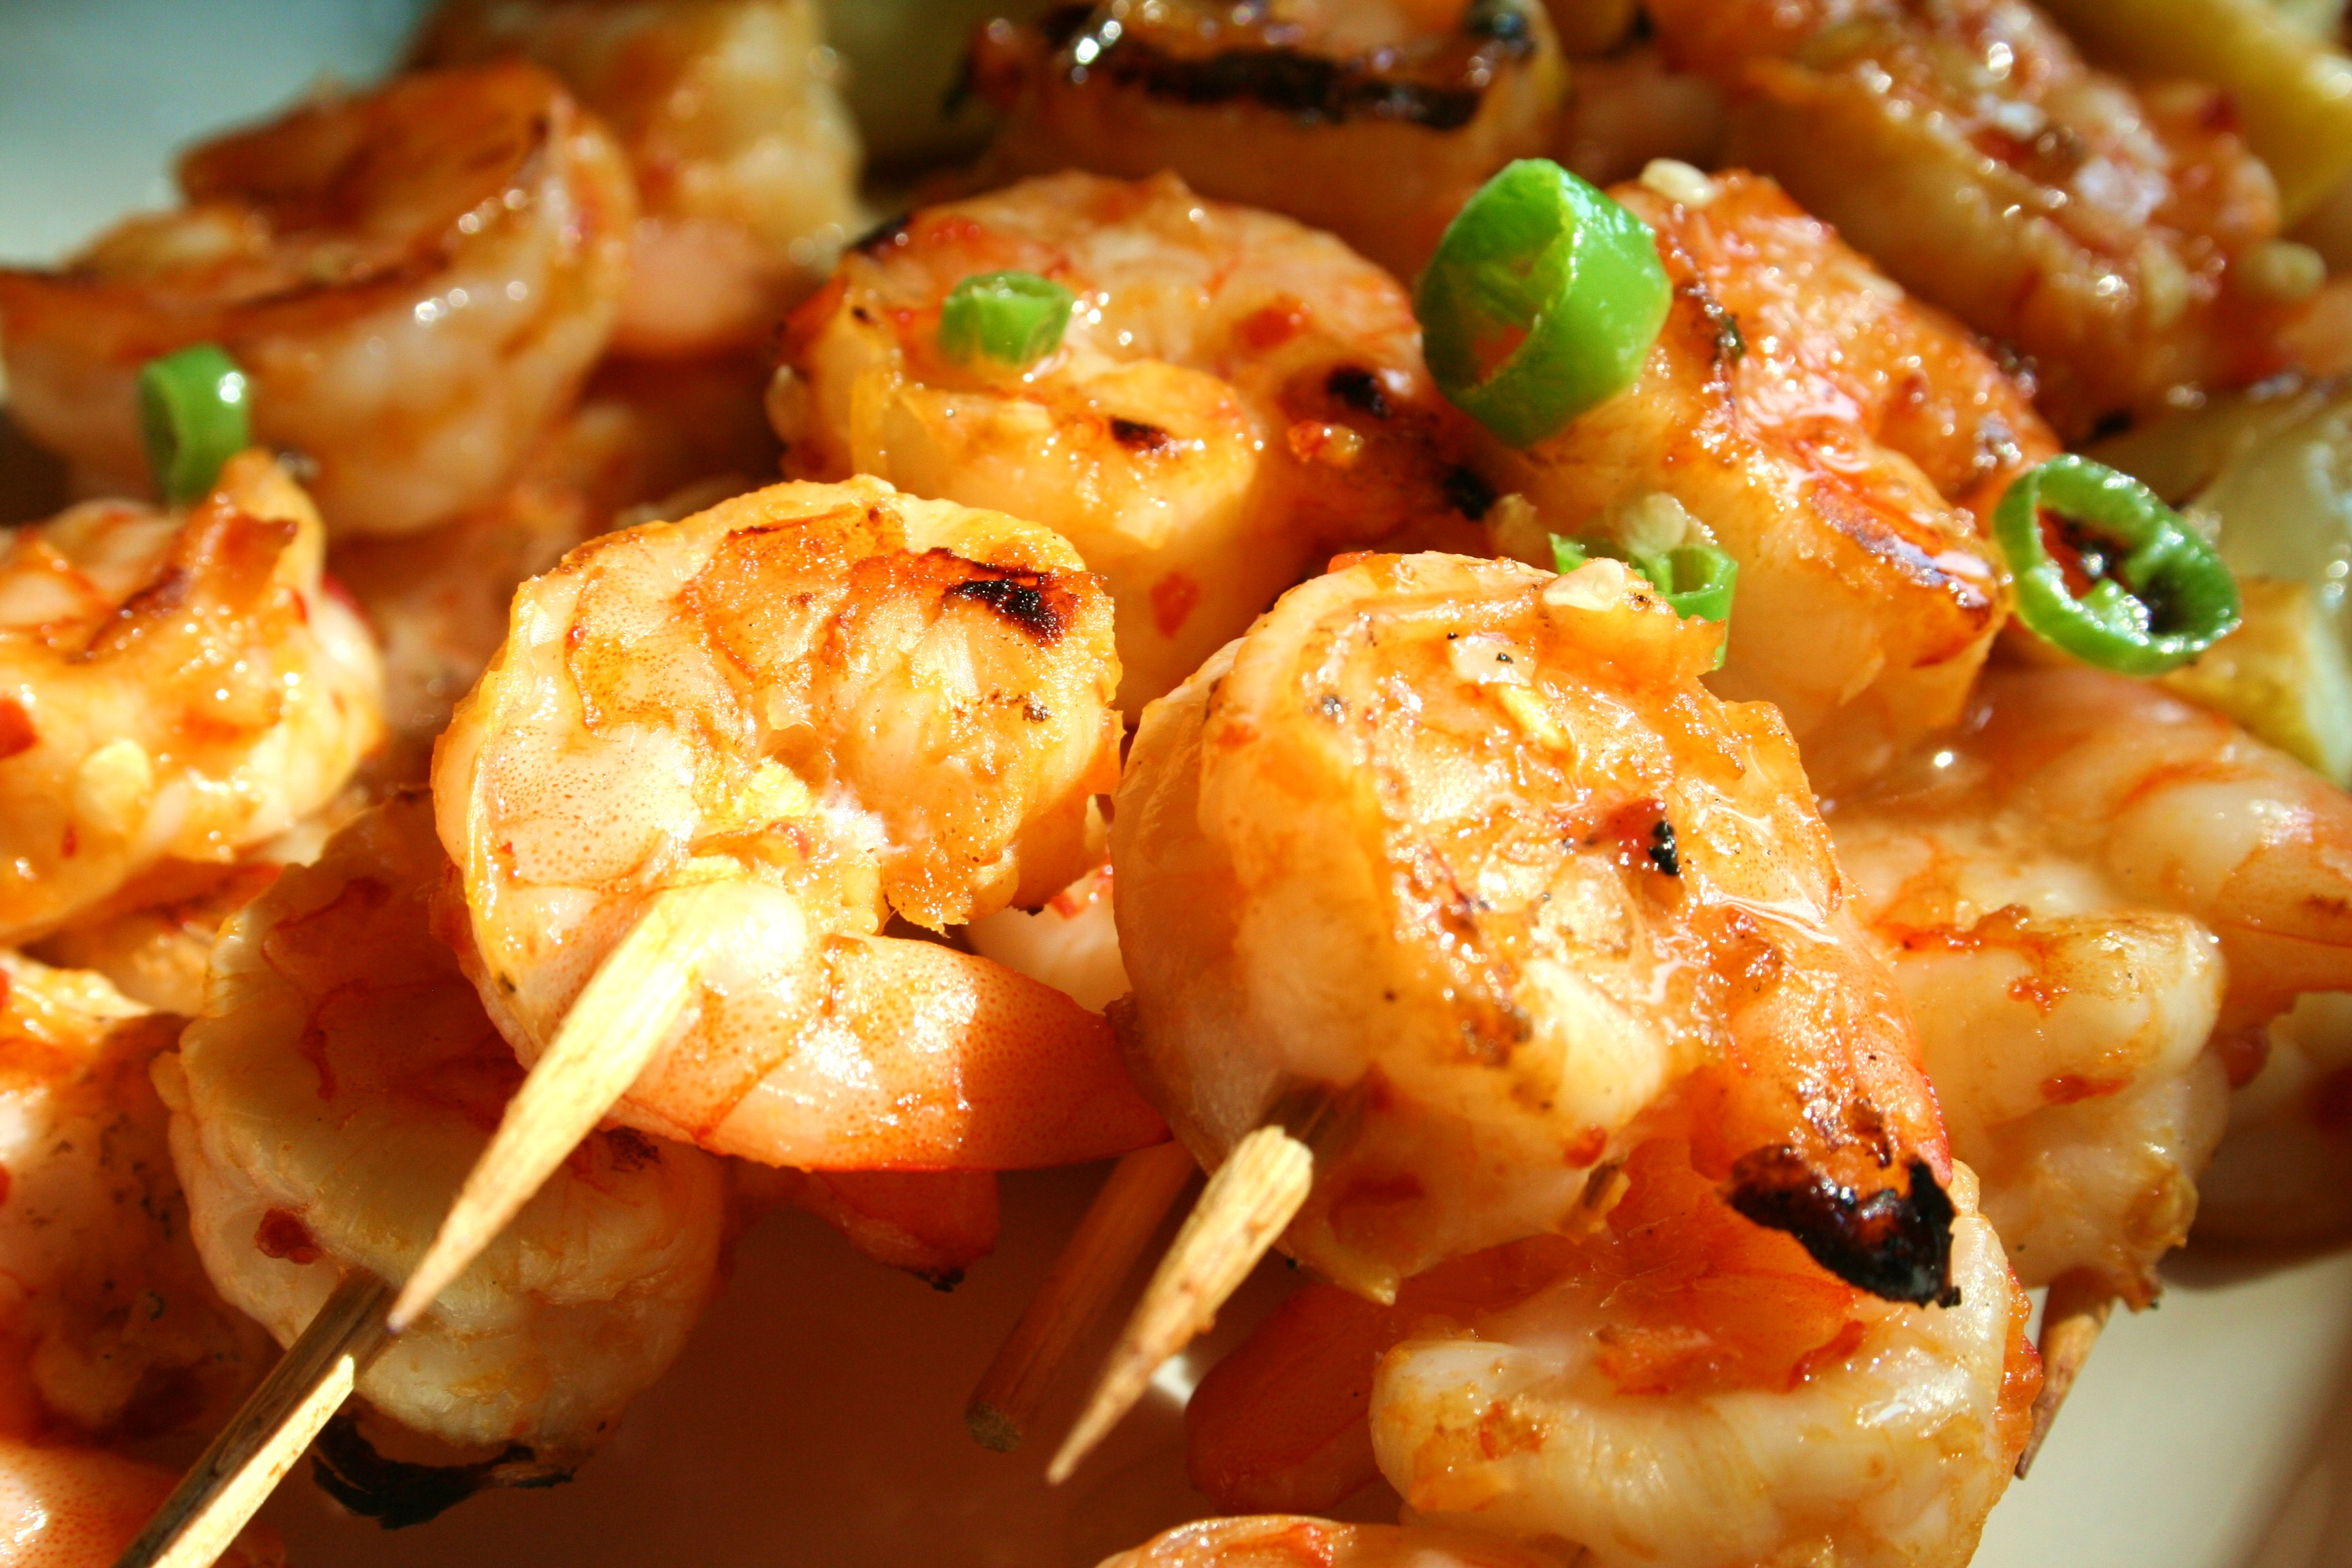 Spicy shrimp skewers with lemon and Thai peppers